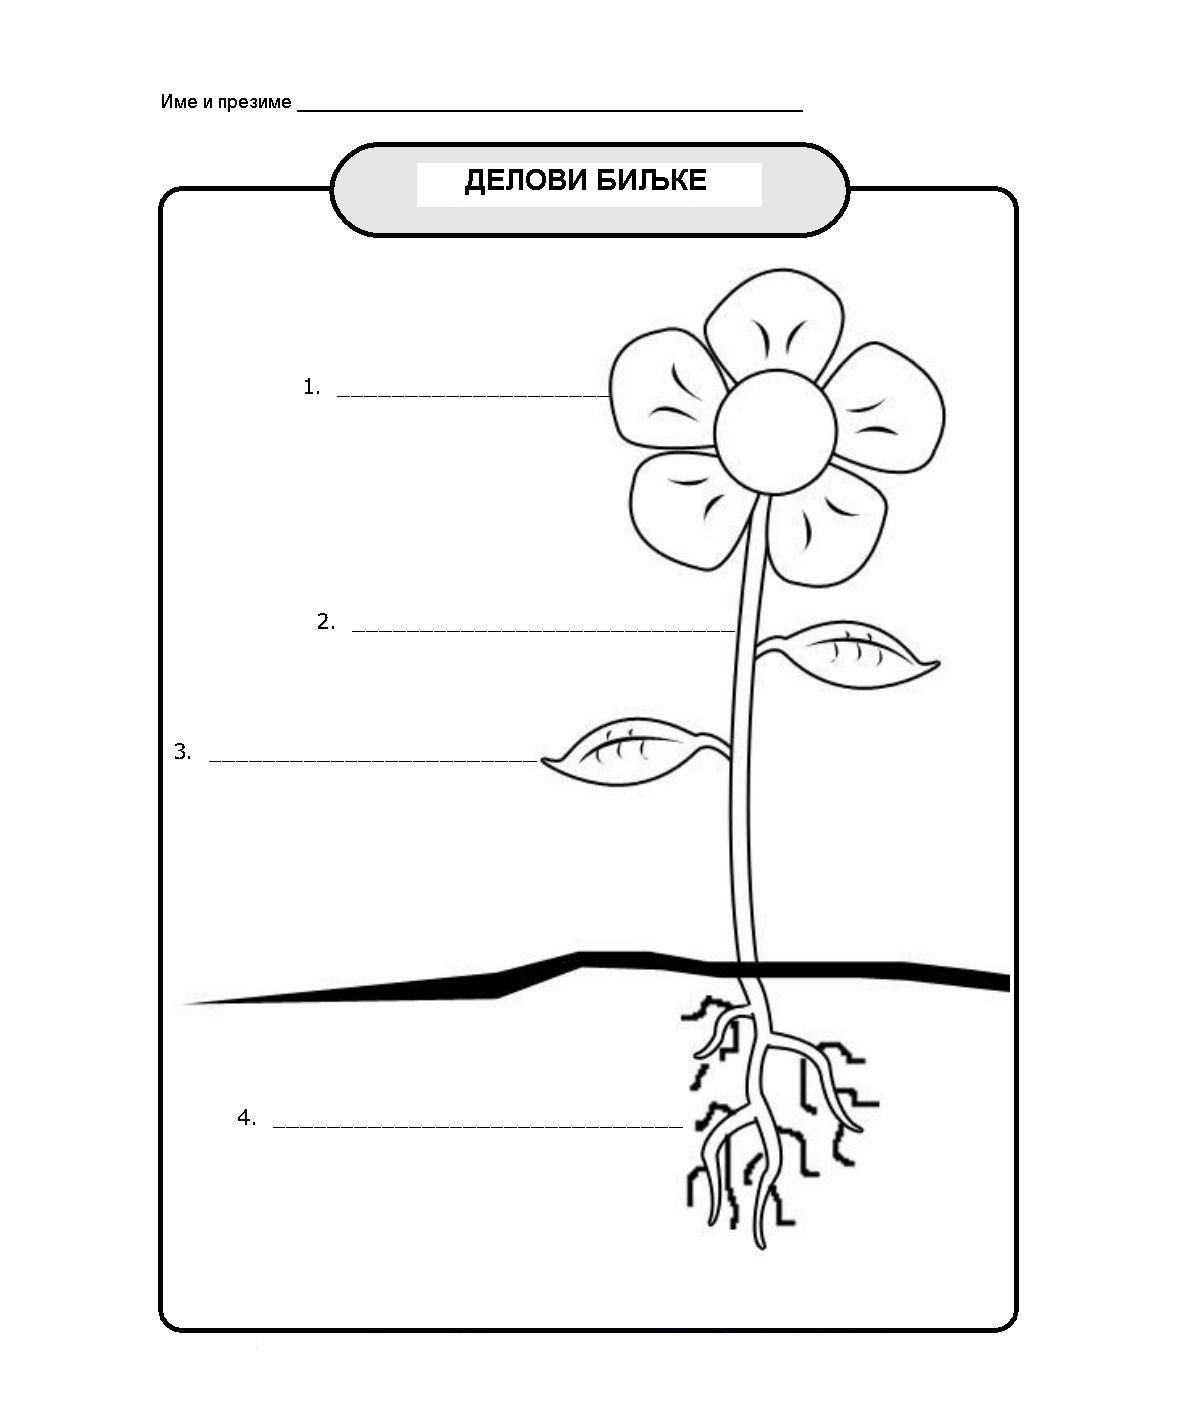 Science Worksheet 1st Grade °Å¸ñ€°²°¸ ñ€°°°·ñ€°µ°´ Reading